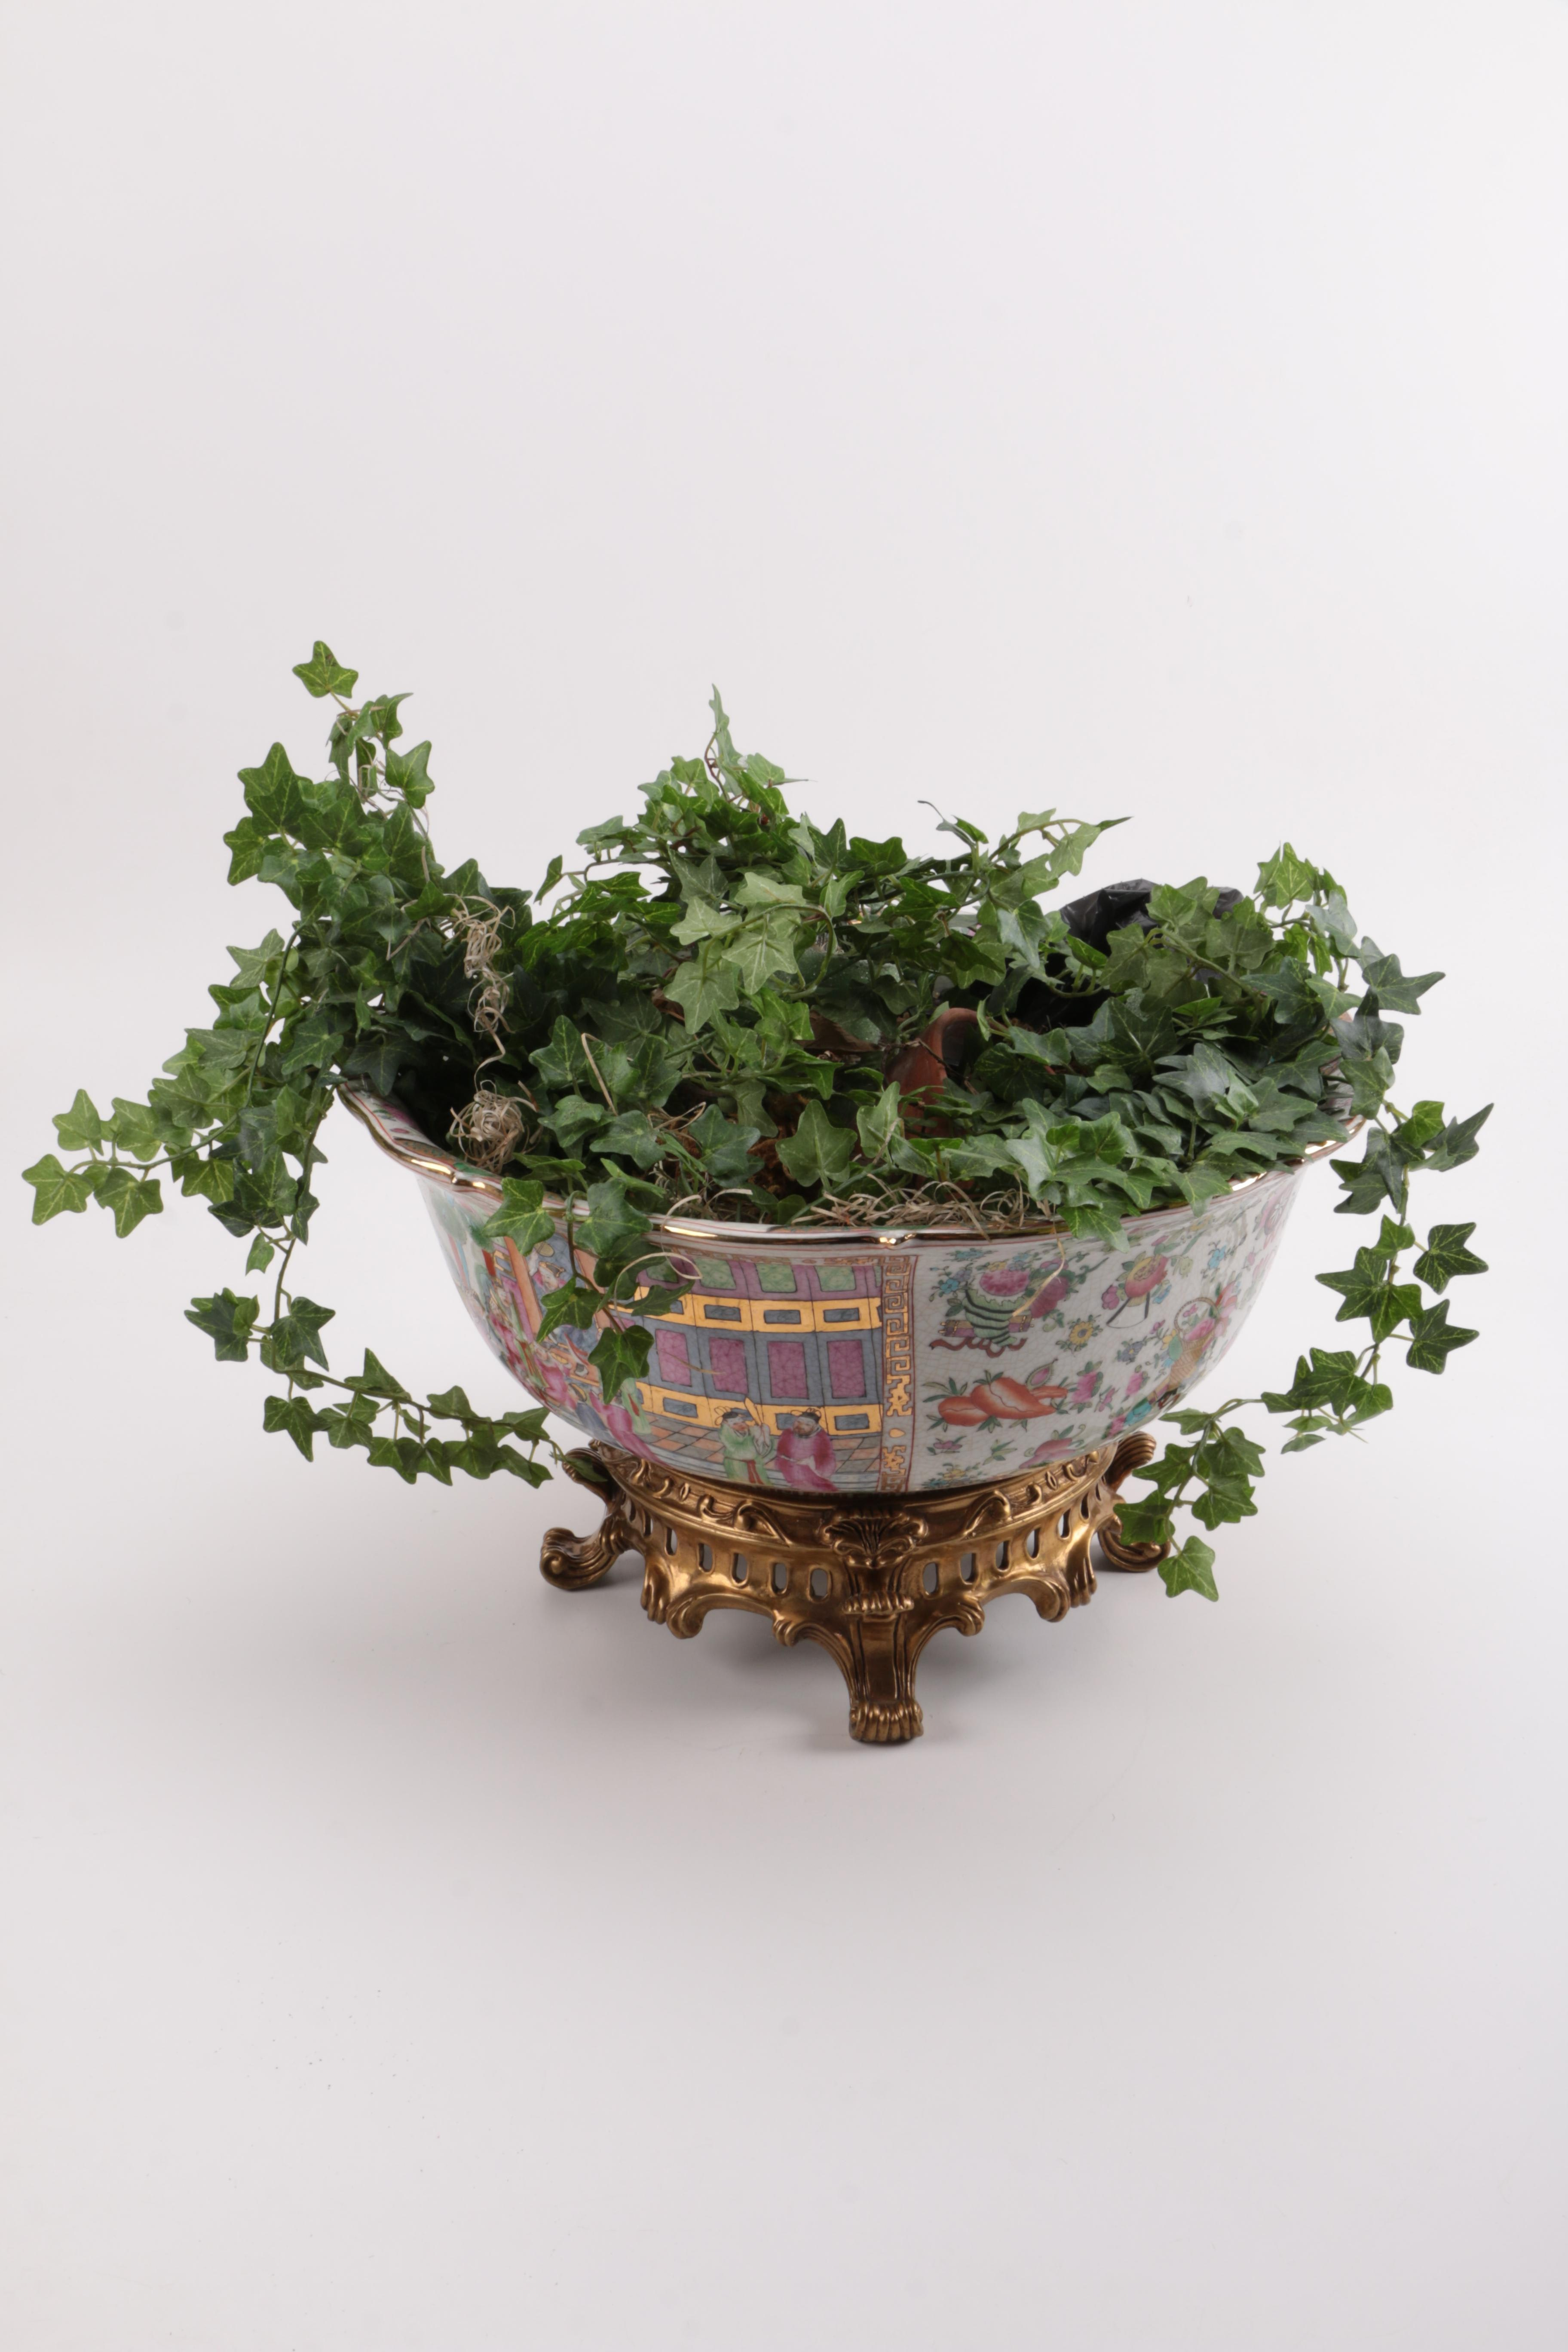 Chinese Hand Painted Ceramic Planter With Artificial Plant